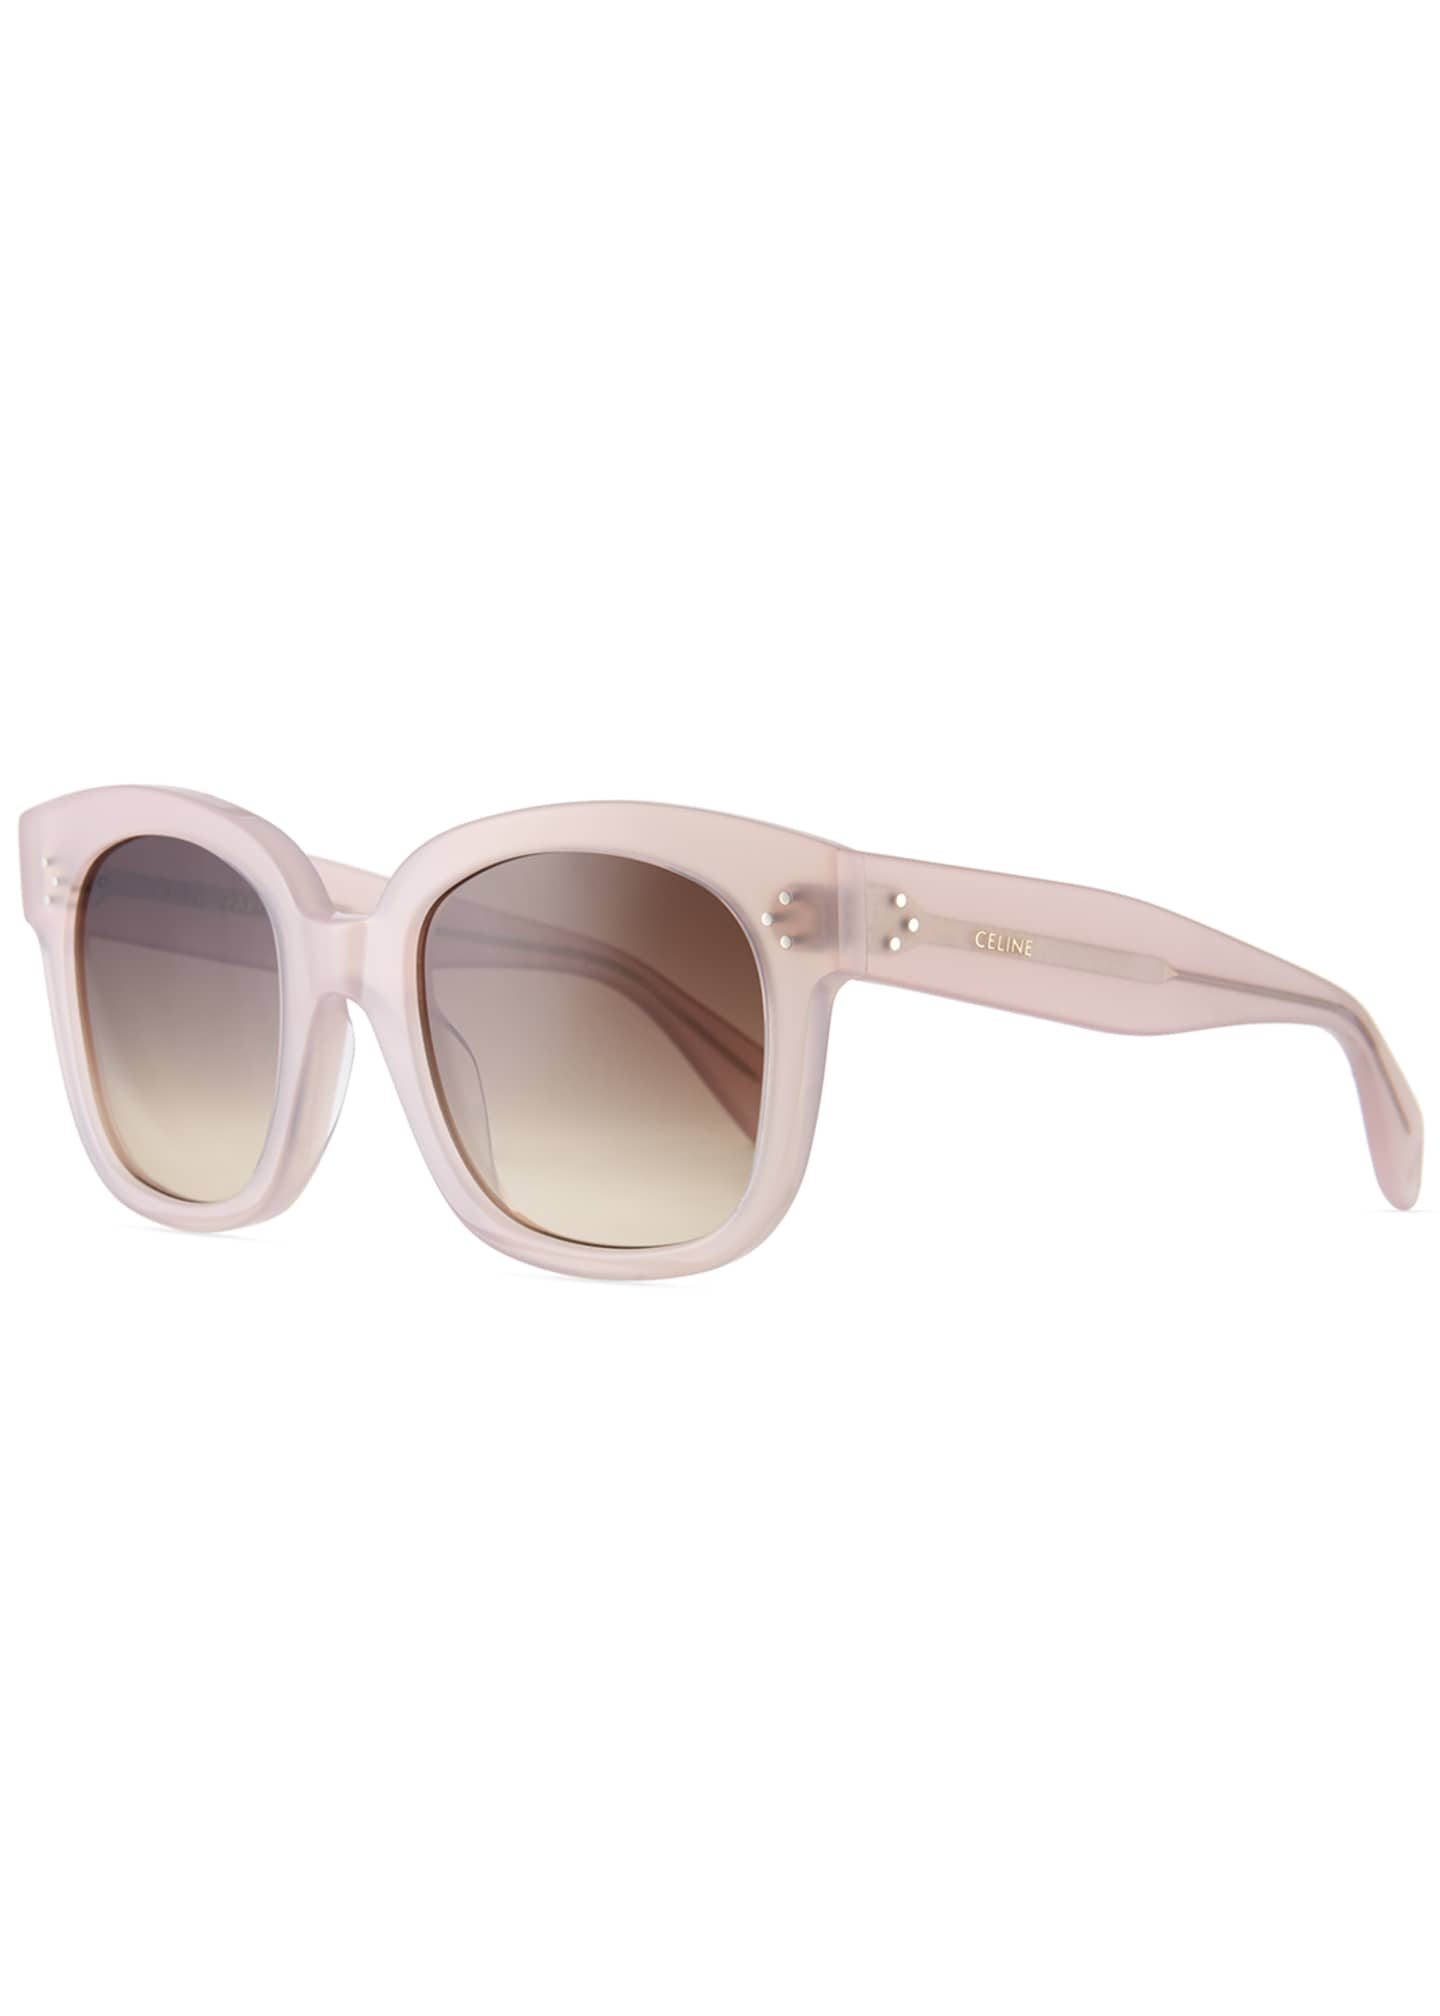 Celine Square Gradient Acetate Sunglasses, Black Pattern